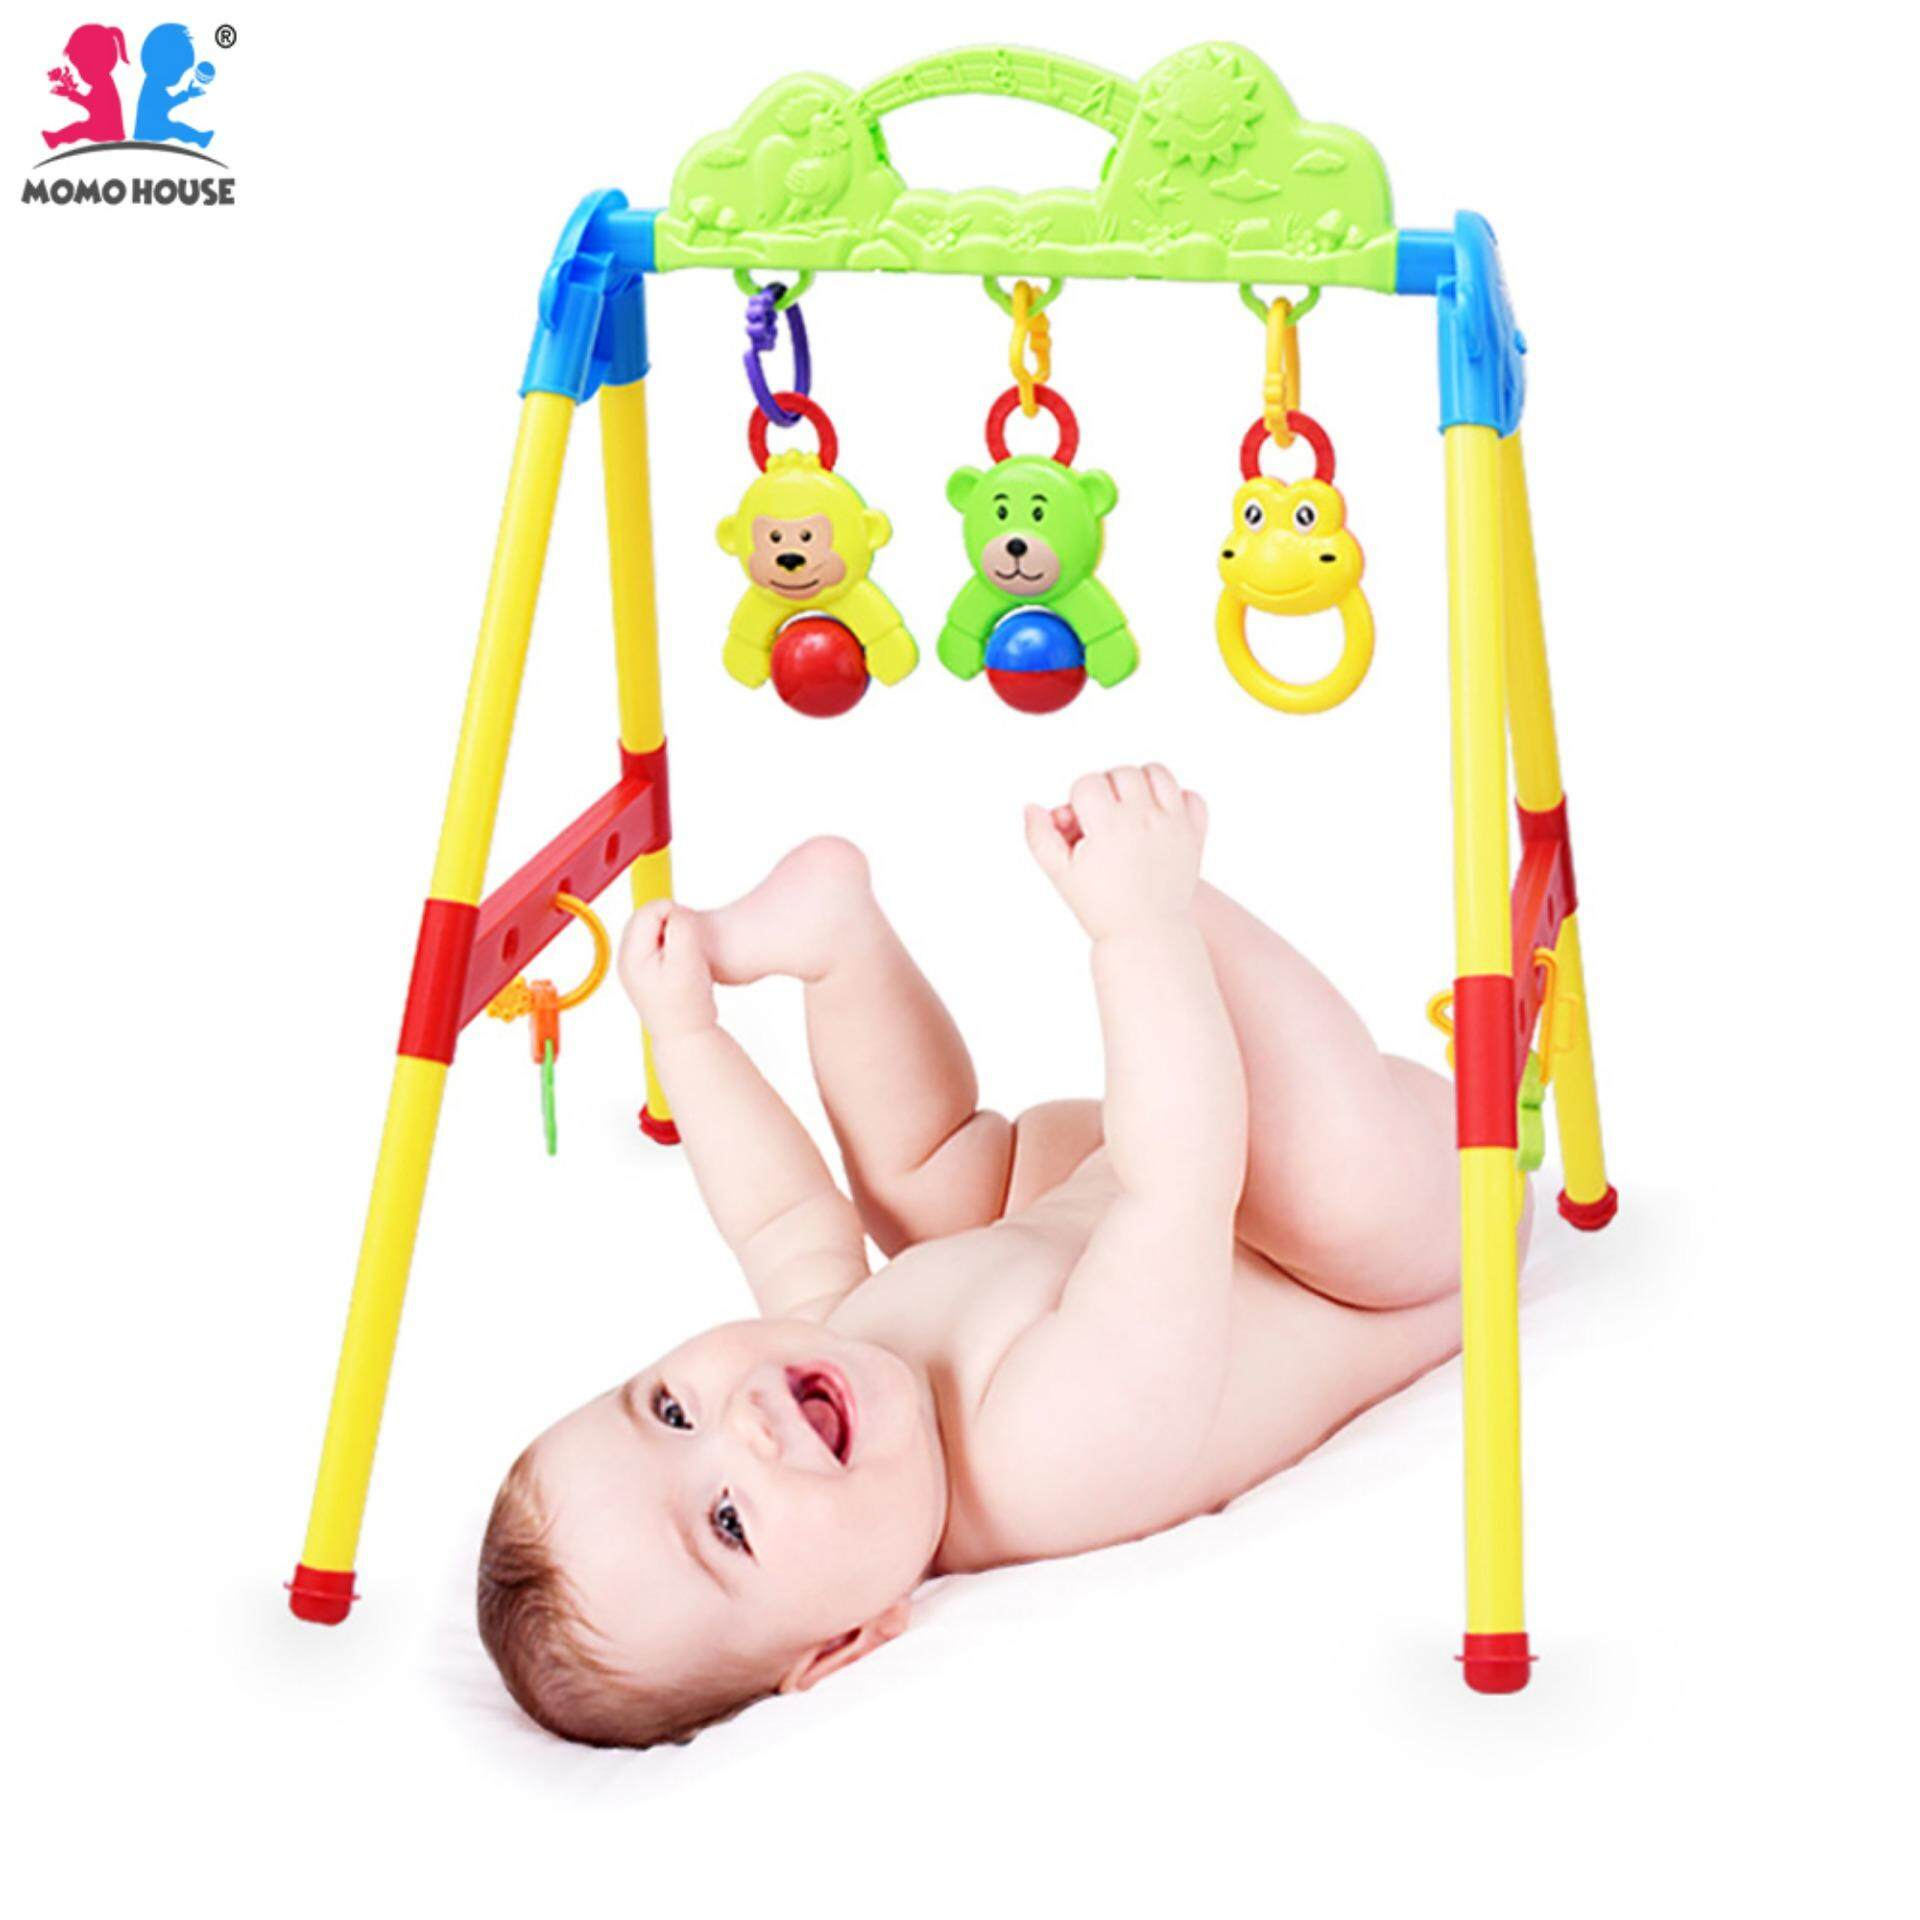 MOMO HOUSE Baby Toddler Activity Rattle Fitness Playgym Play Gym